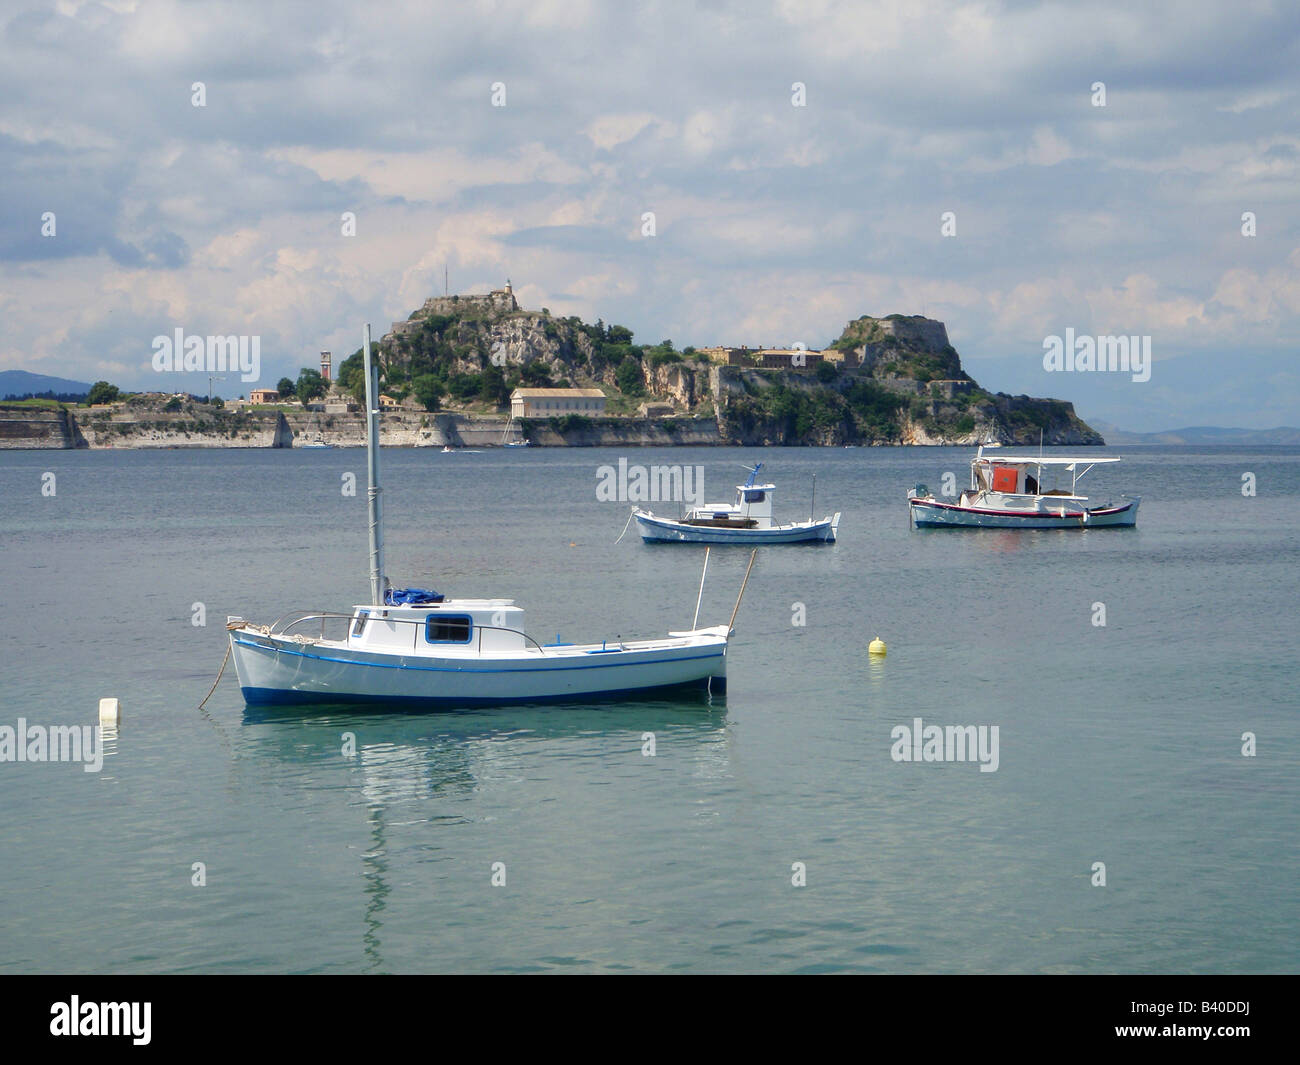 Fishing boats in a quiet bay near Garitsa, overlooking the Old Fort. Corfu, Greece. - Stock Image